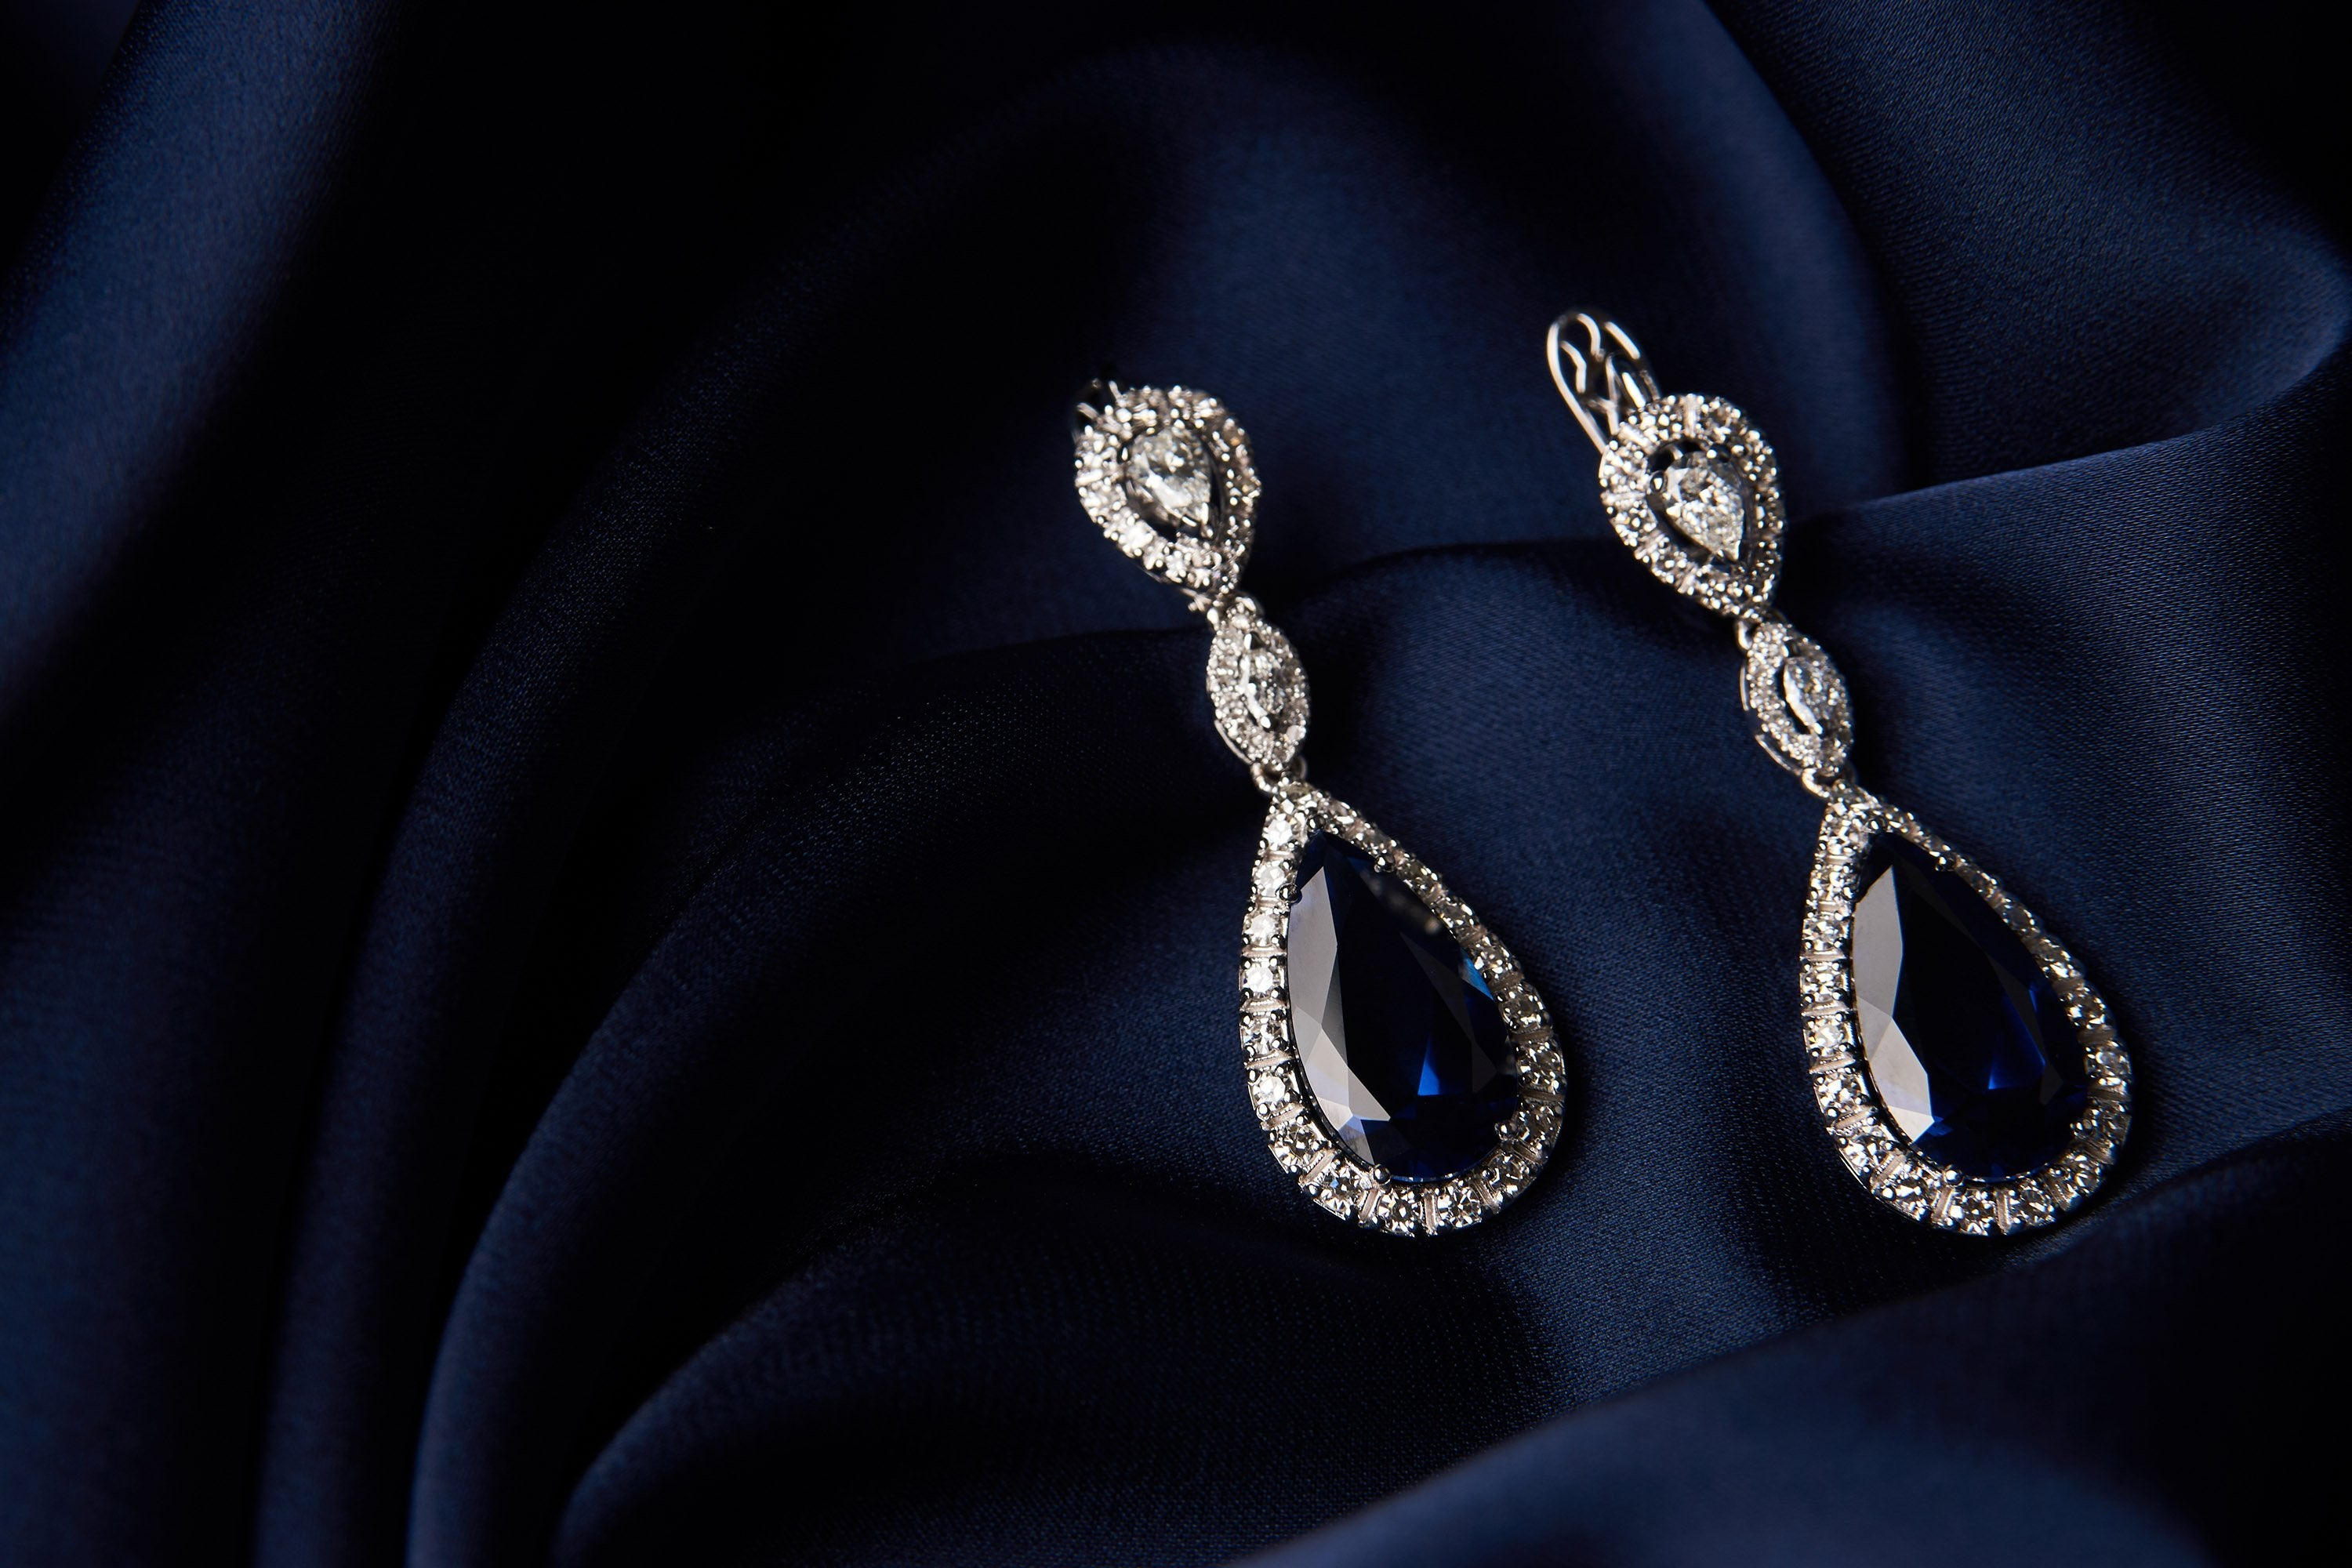 Buy Diamond Earrings for a dazzling affair